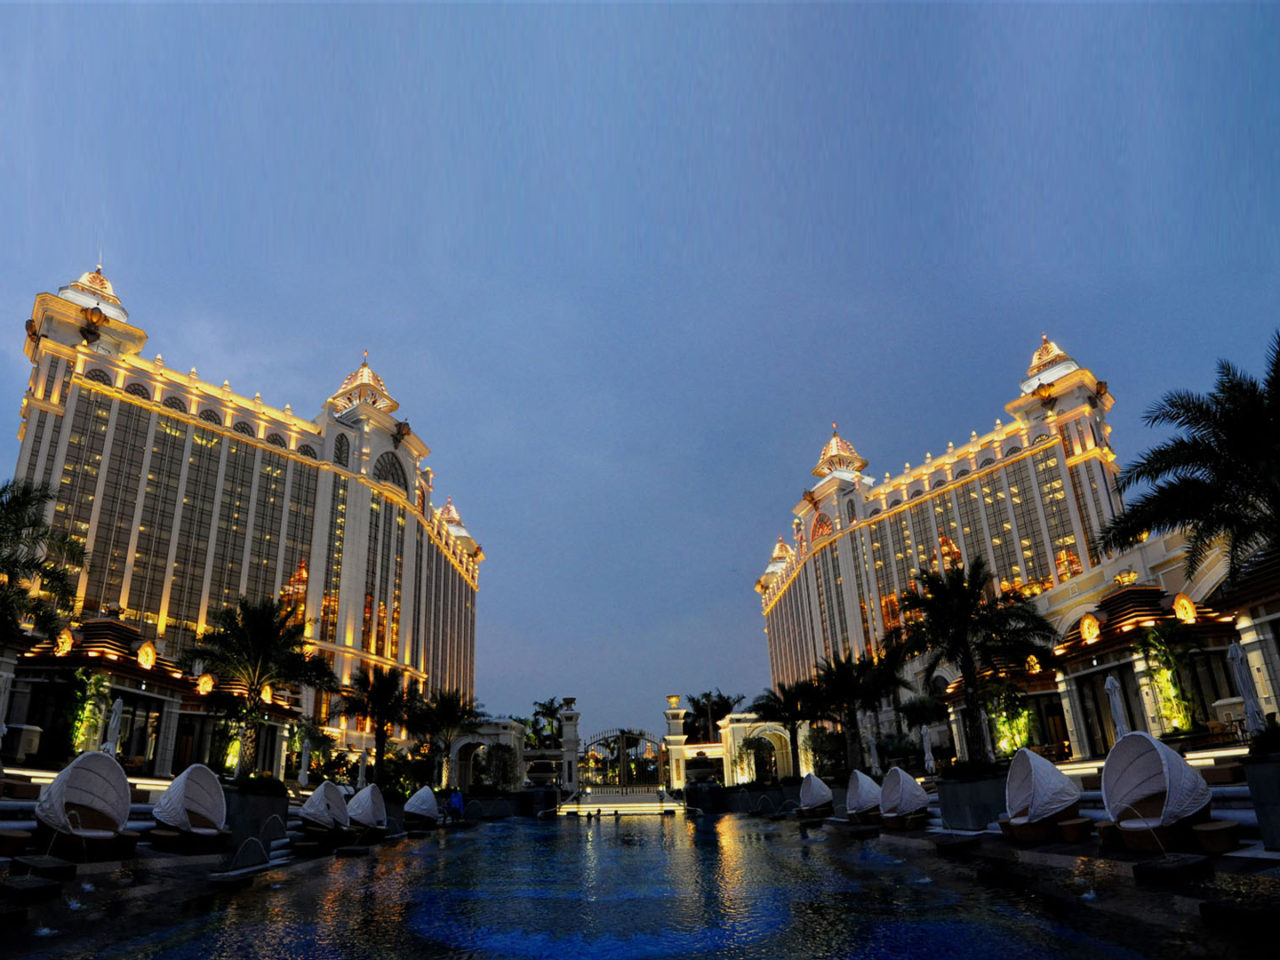 Las Vegas Hd Wallpaper Night Luxury Macau Hotels Macau Resorts Banyan Tree Macau